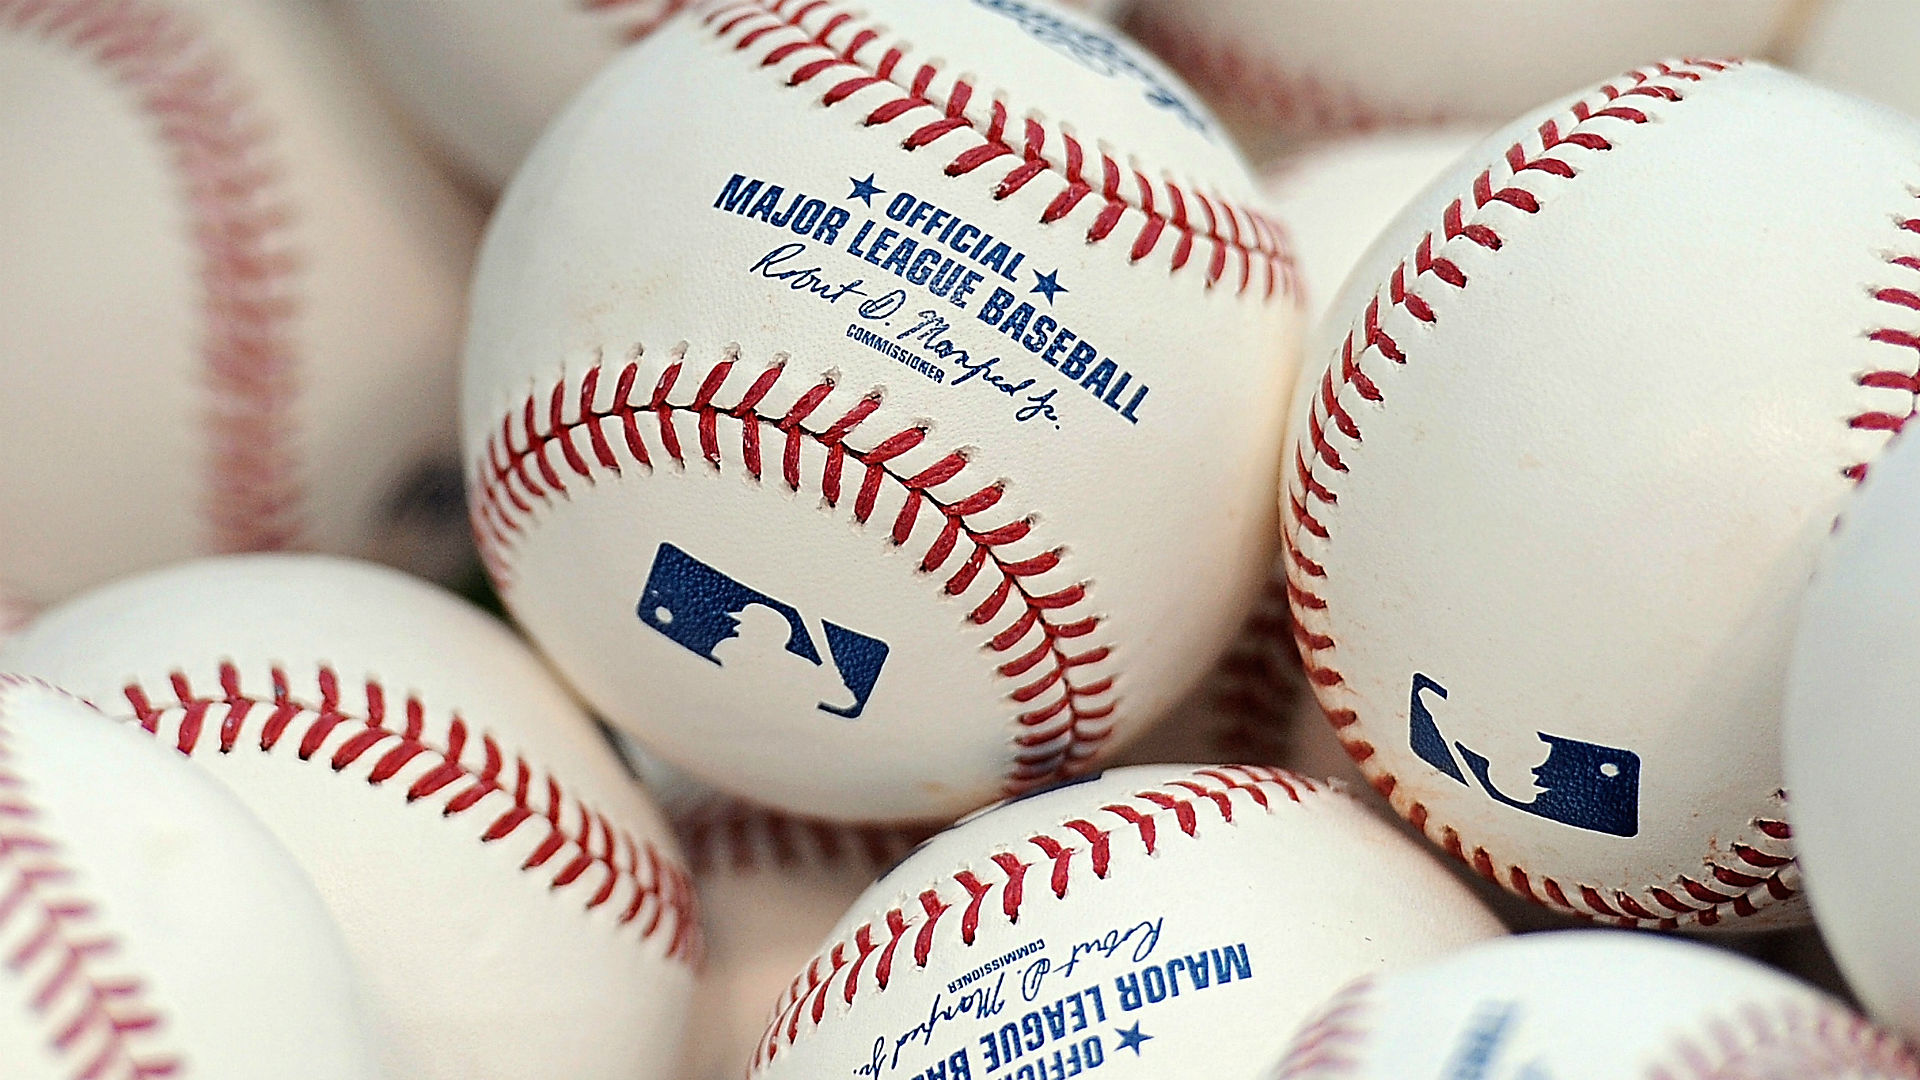 MLB trying to create 'tacky' baseballs to reduce cheating, report says